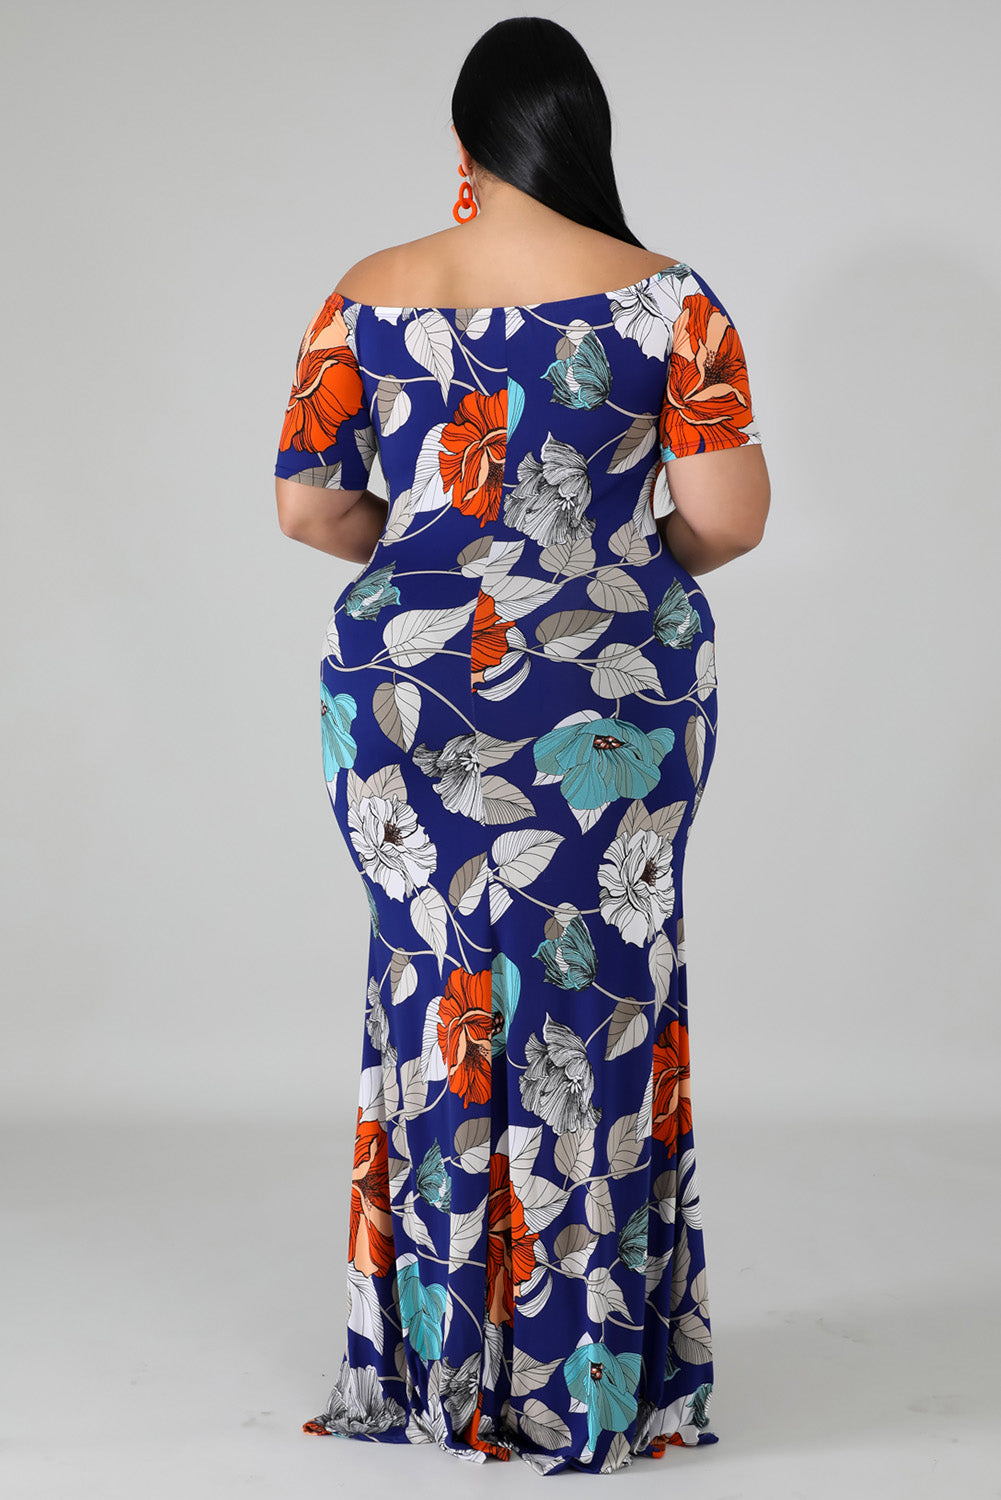 Blue Off-the-shoulder Floral Print Plus Size Maxi Dress